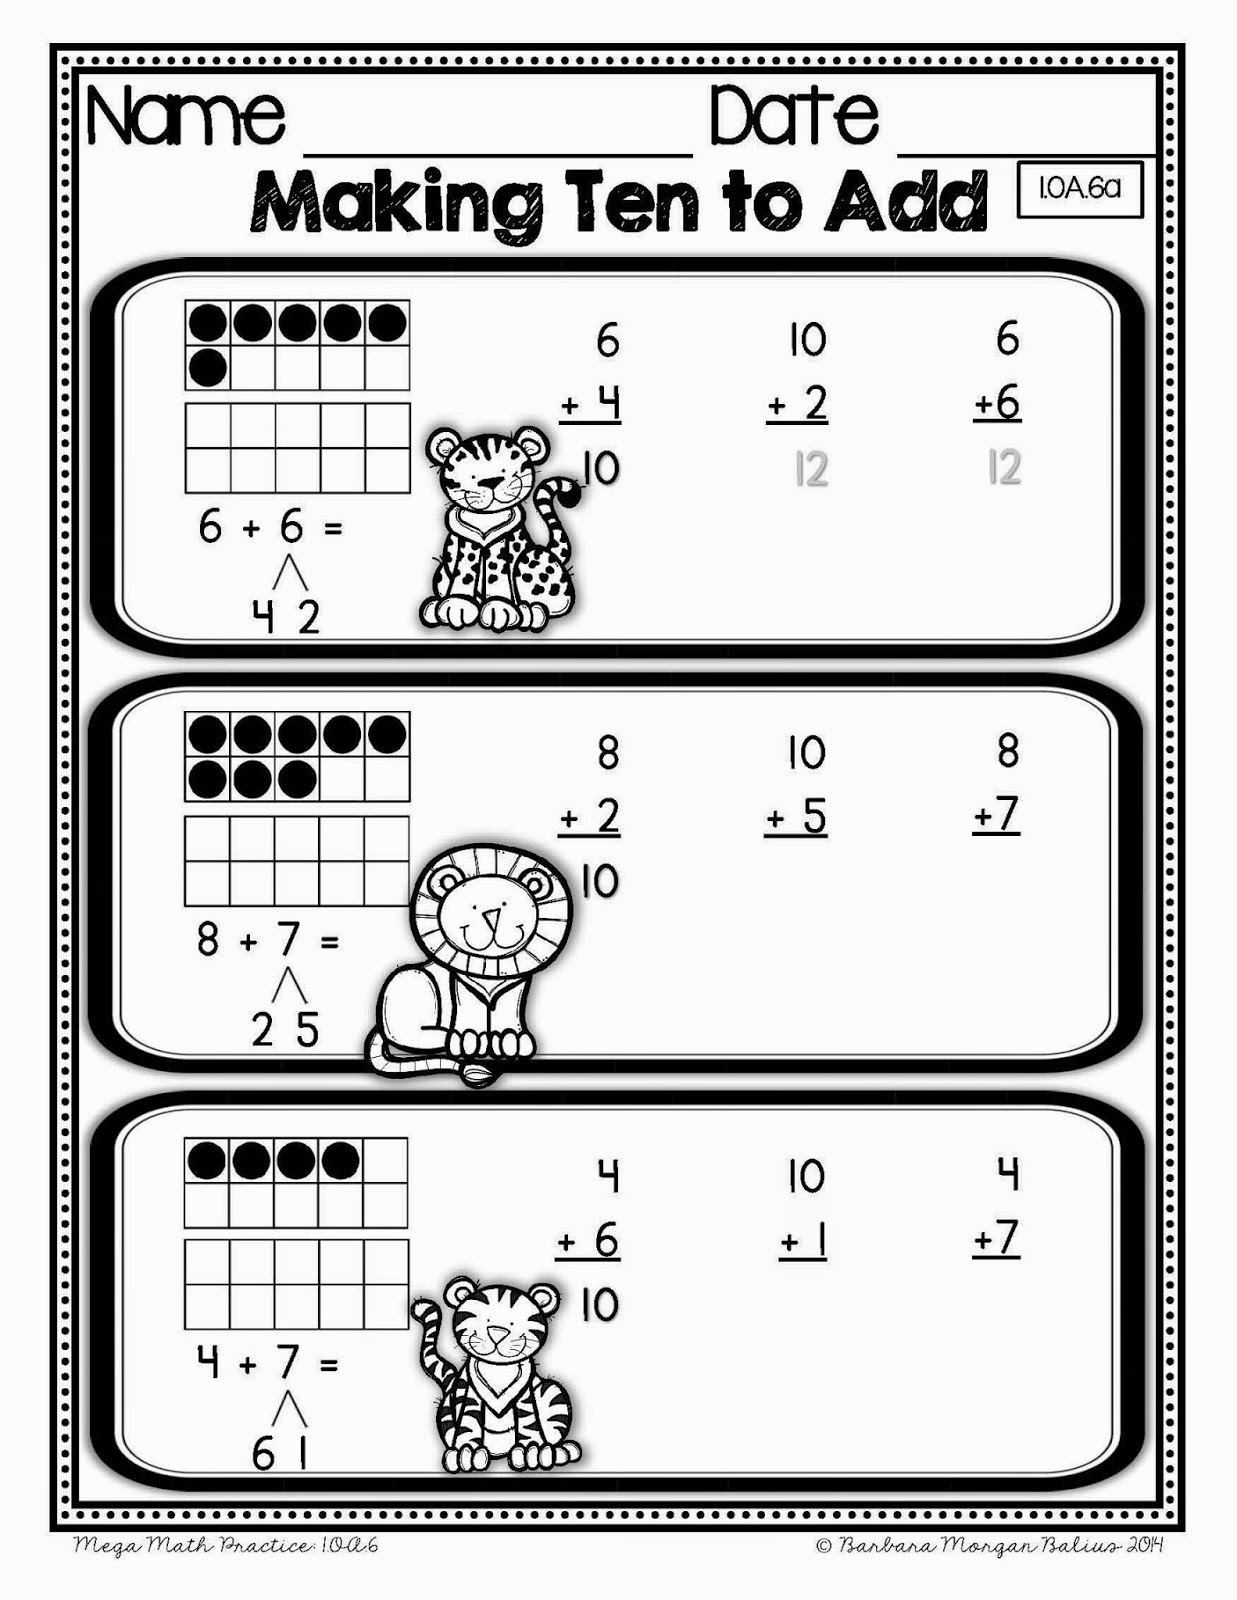 17 Best Images of Different Ways To Make 10 Worksheets